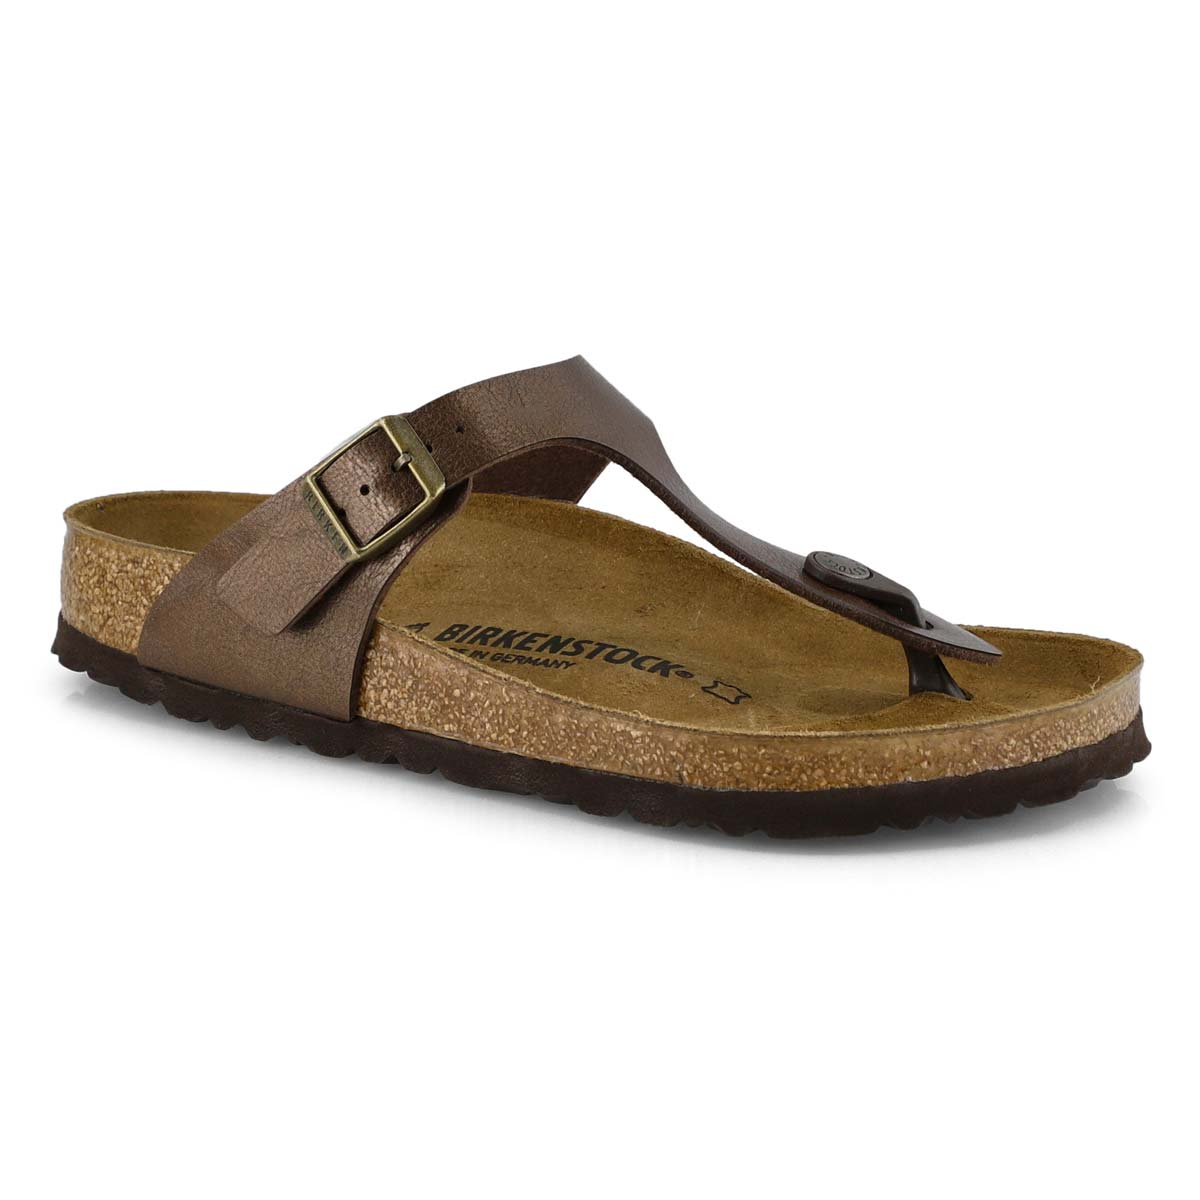 Women's GIZEH toffee birko-flor sandals